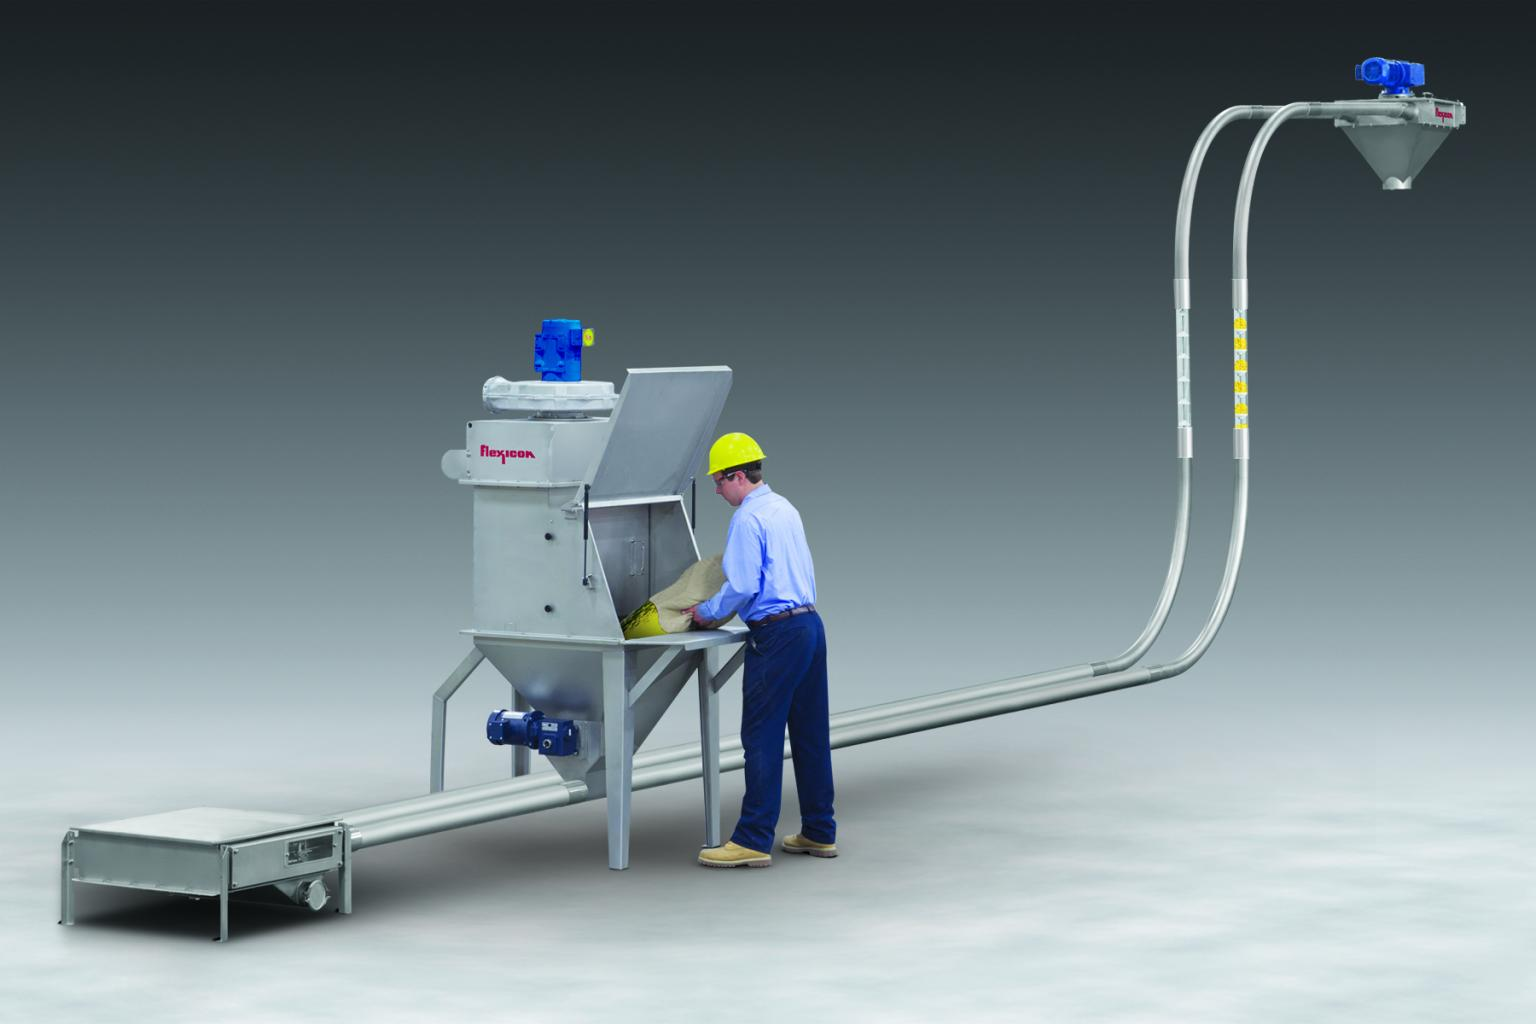 Flexicon Manual Dumping Station with integral FLEXI-DISC Tubular Cable Conveyor contains dust and conveys friable bulk foods and non-foods gently over short or long distances